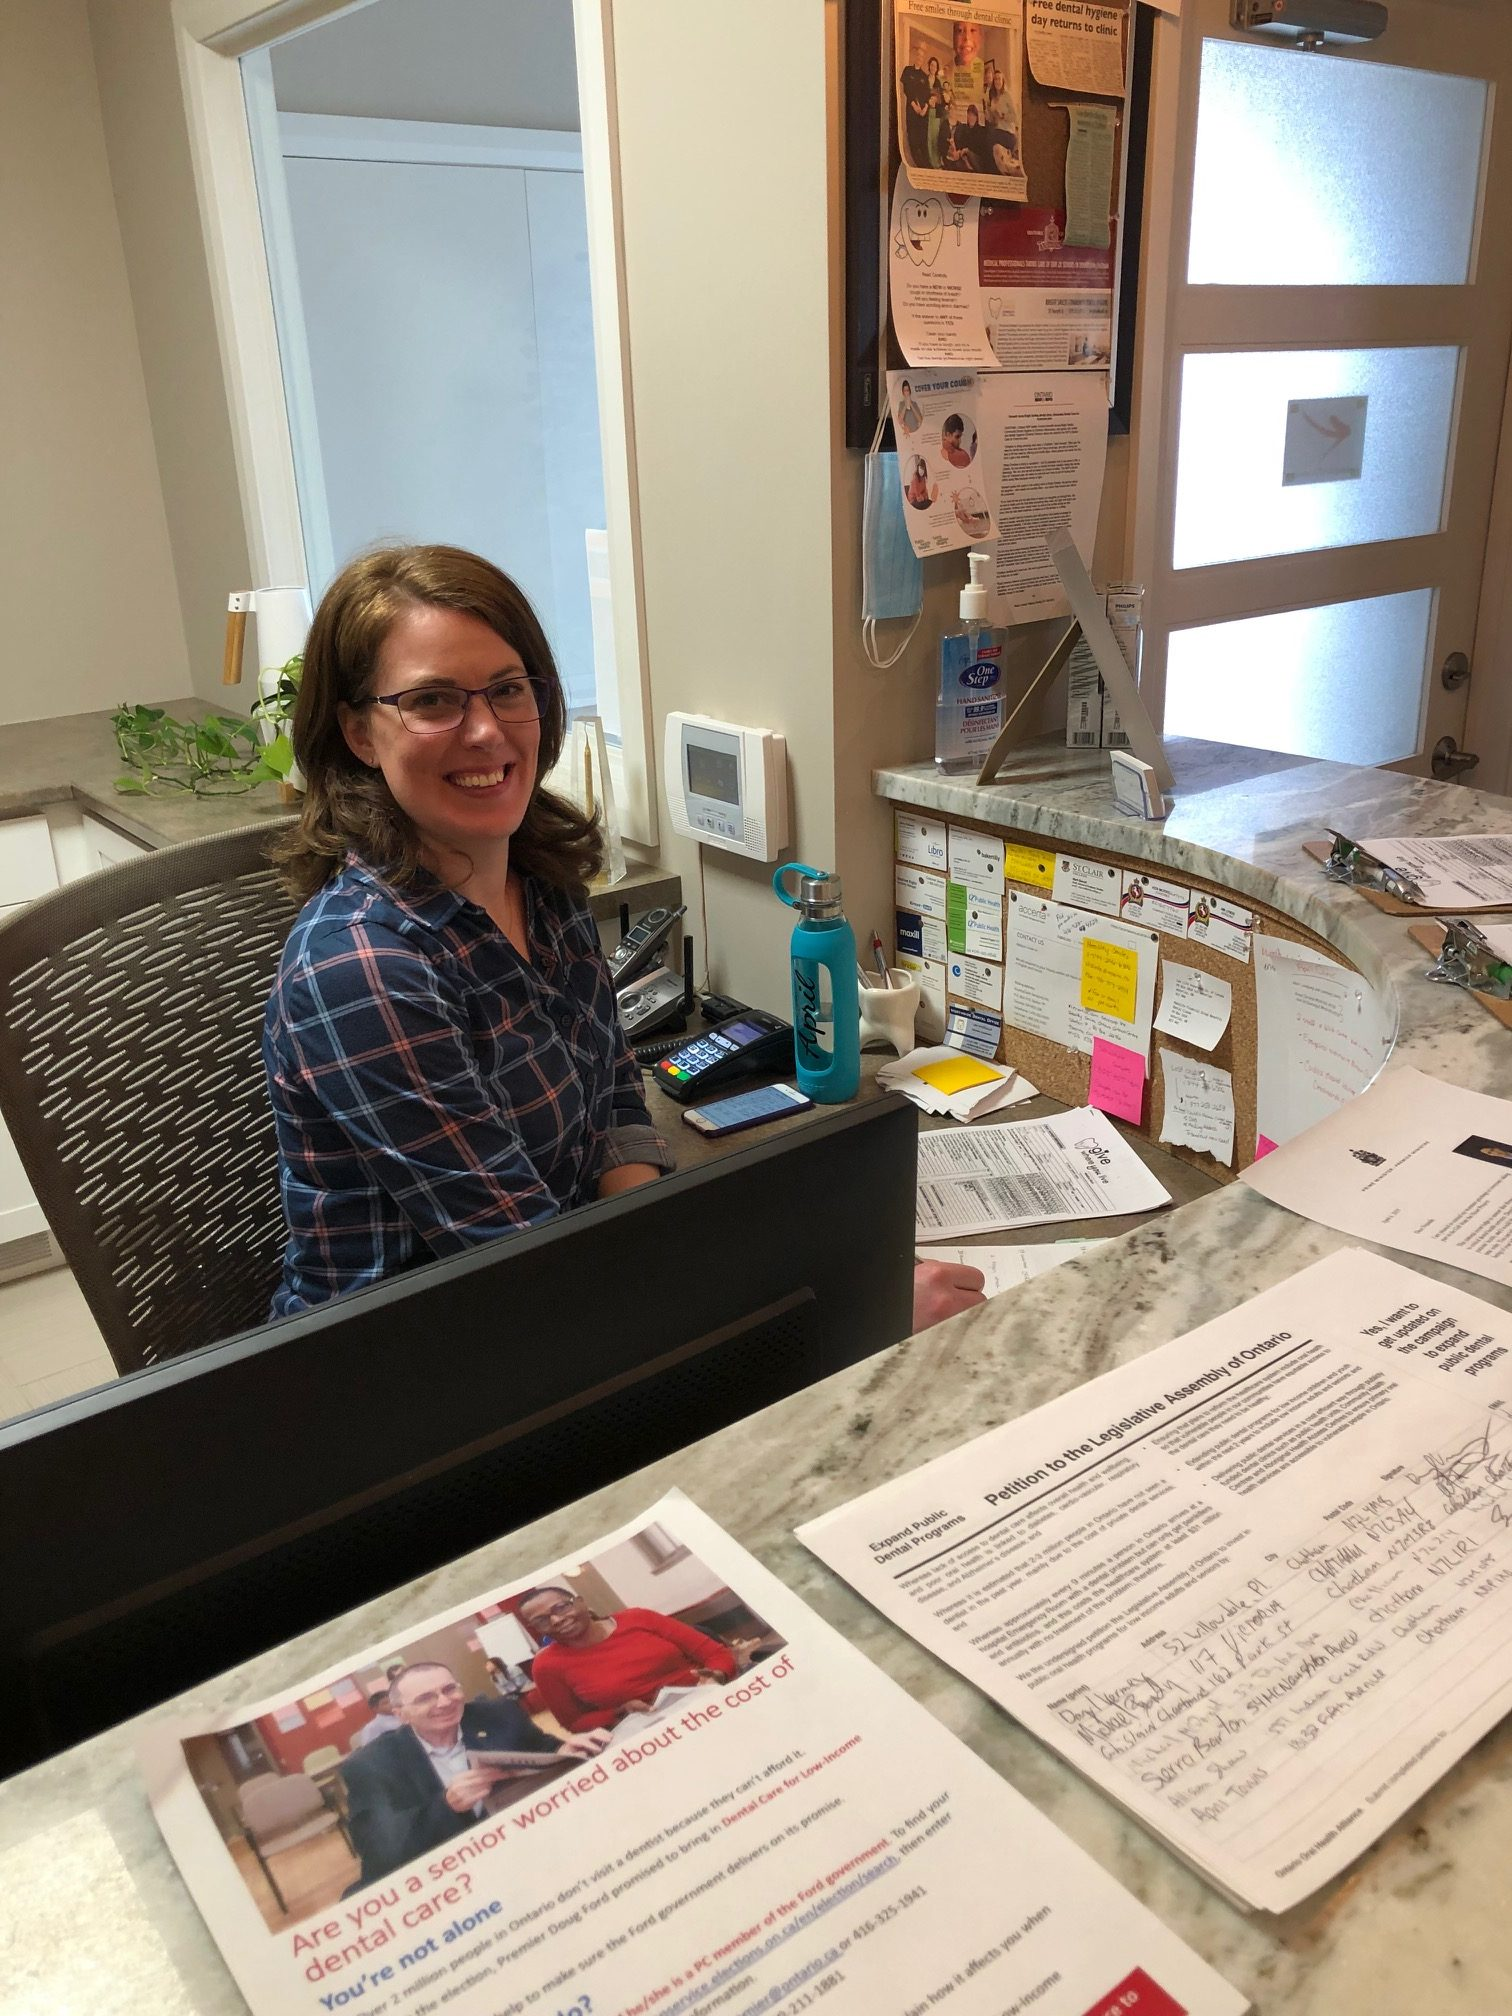 Bright Smiles Community Dental Hygiene – One Smile at a Time